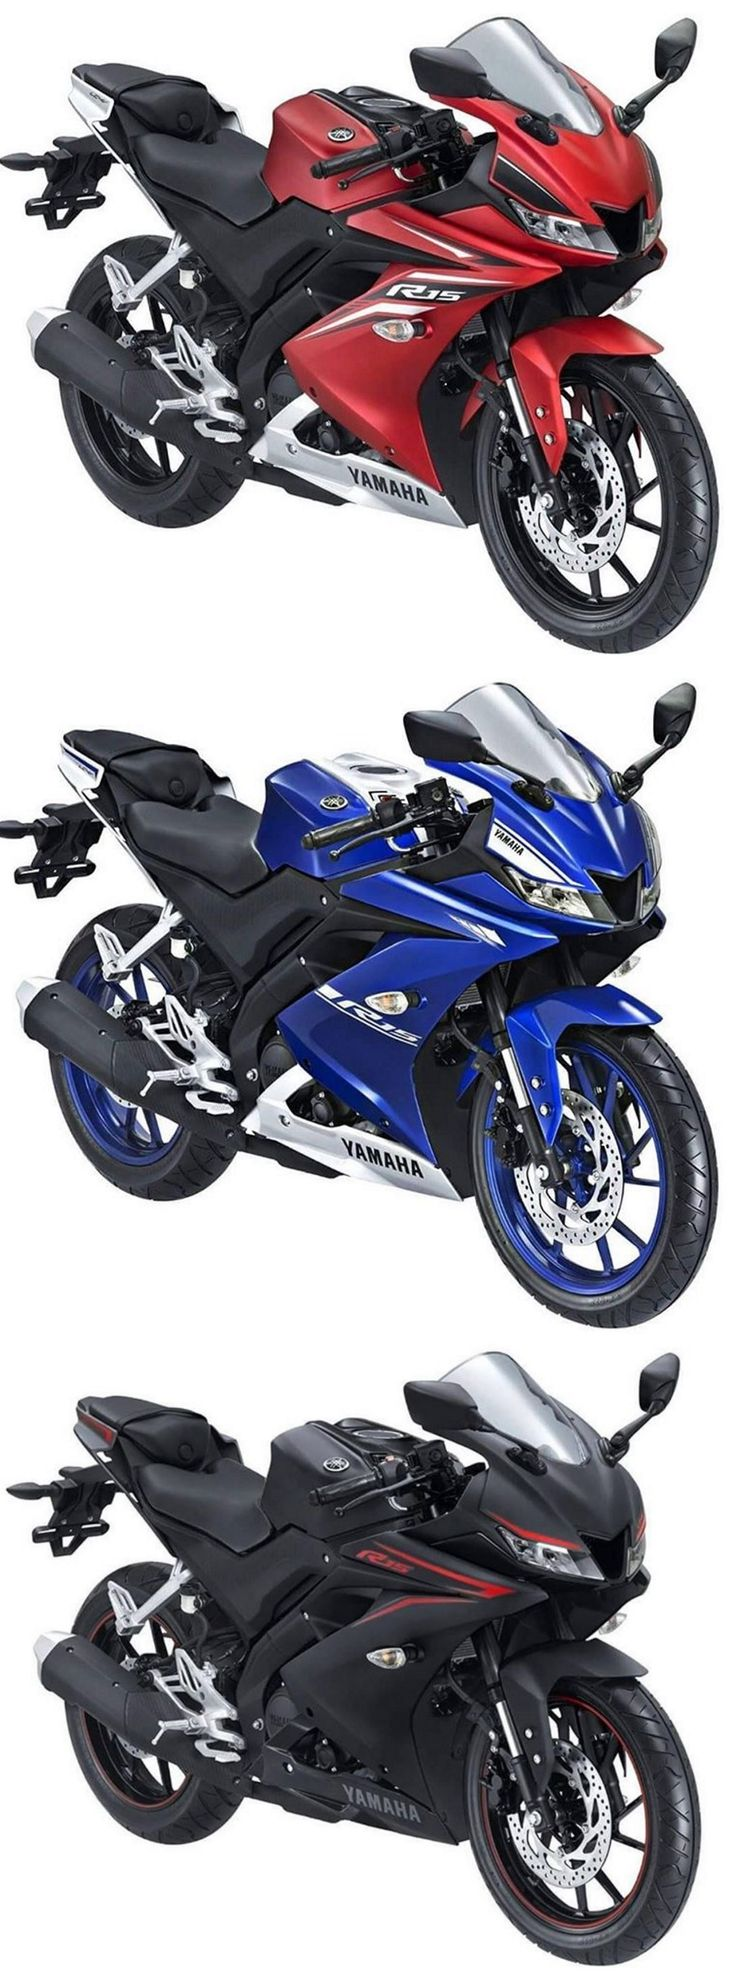 New Yamaha R15 V3 Spotted In India First Time Yamaha